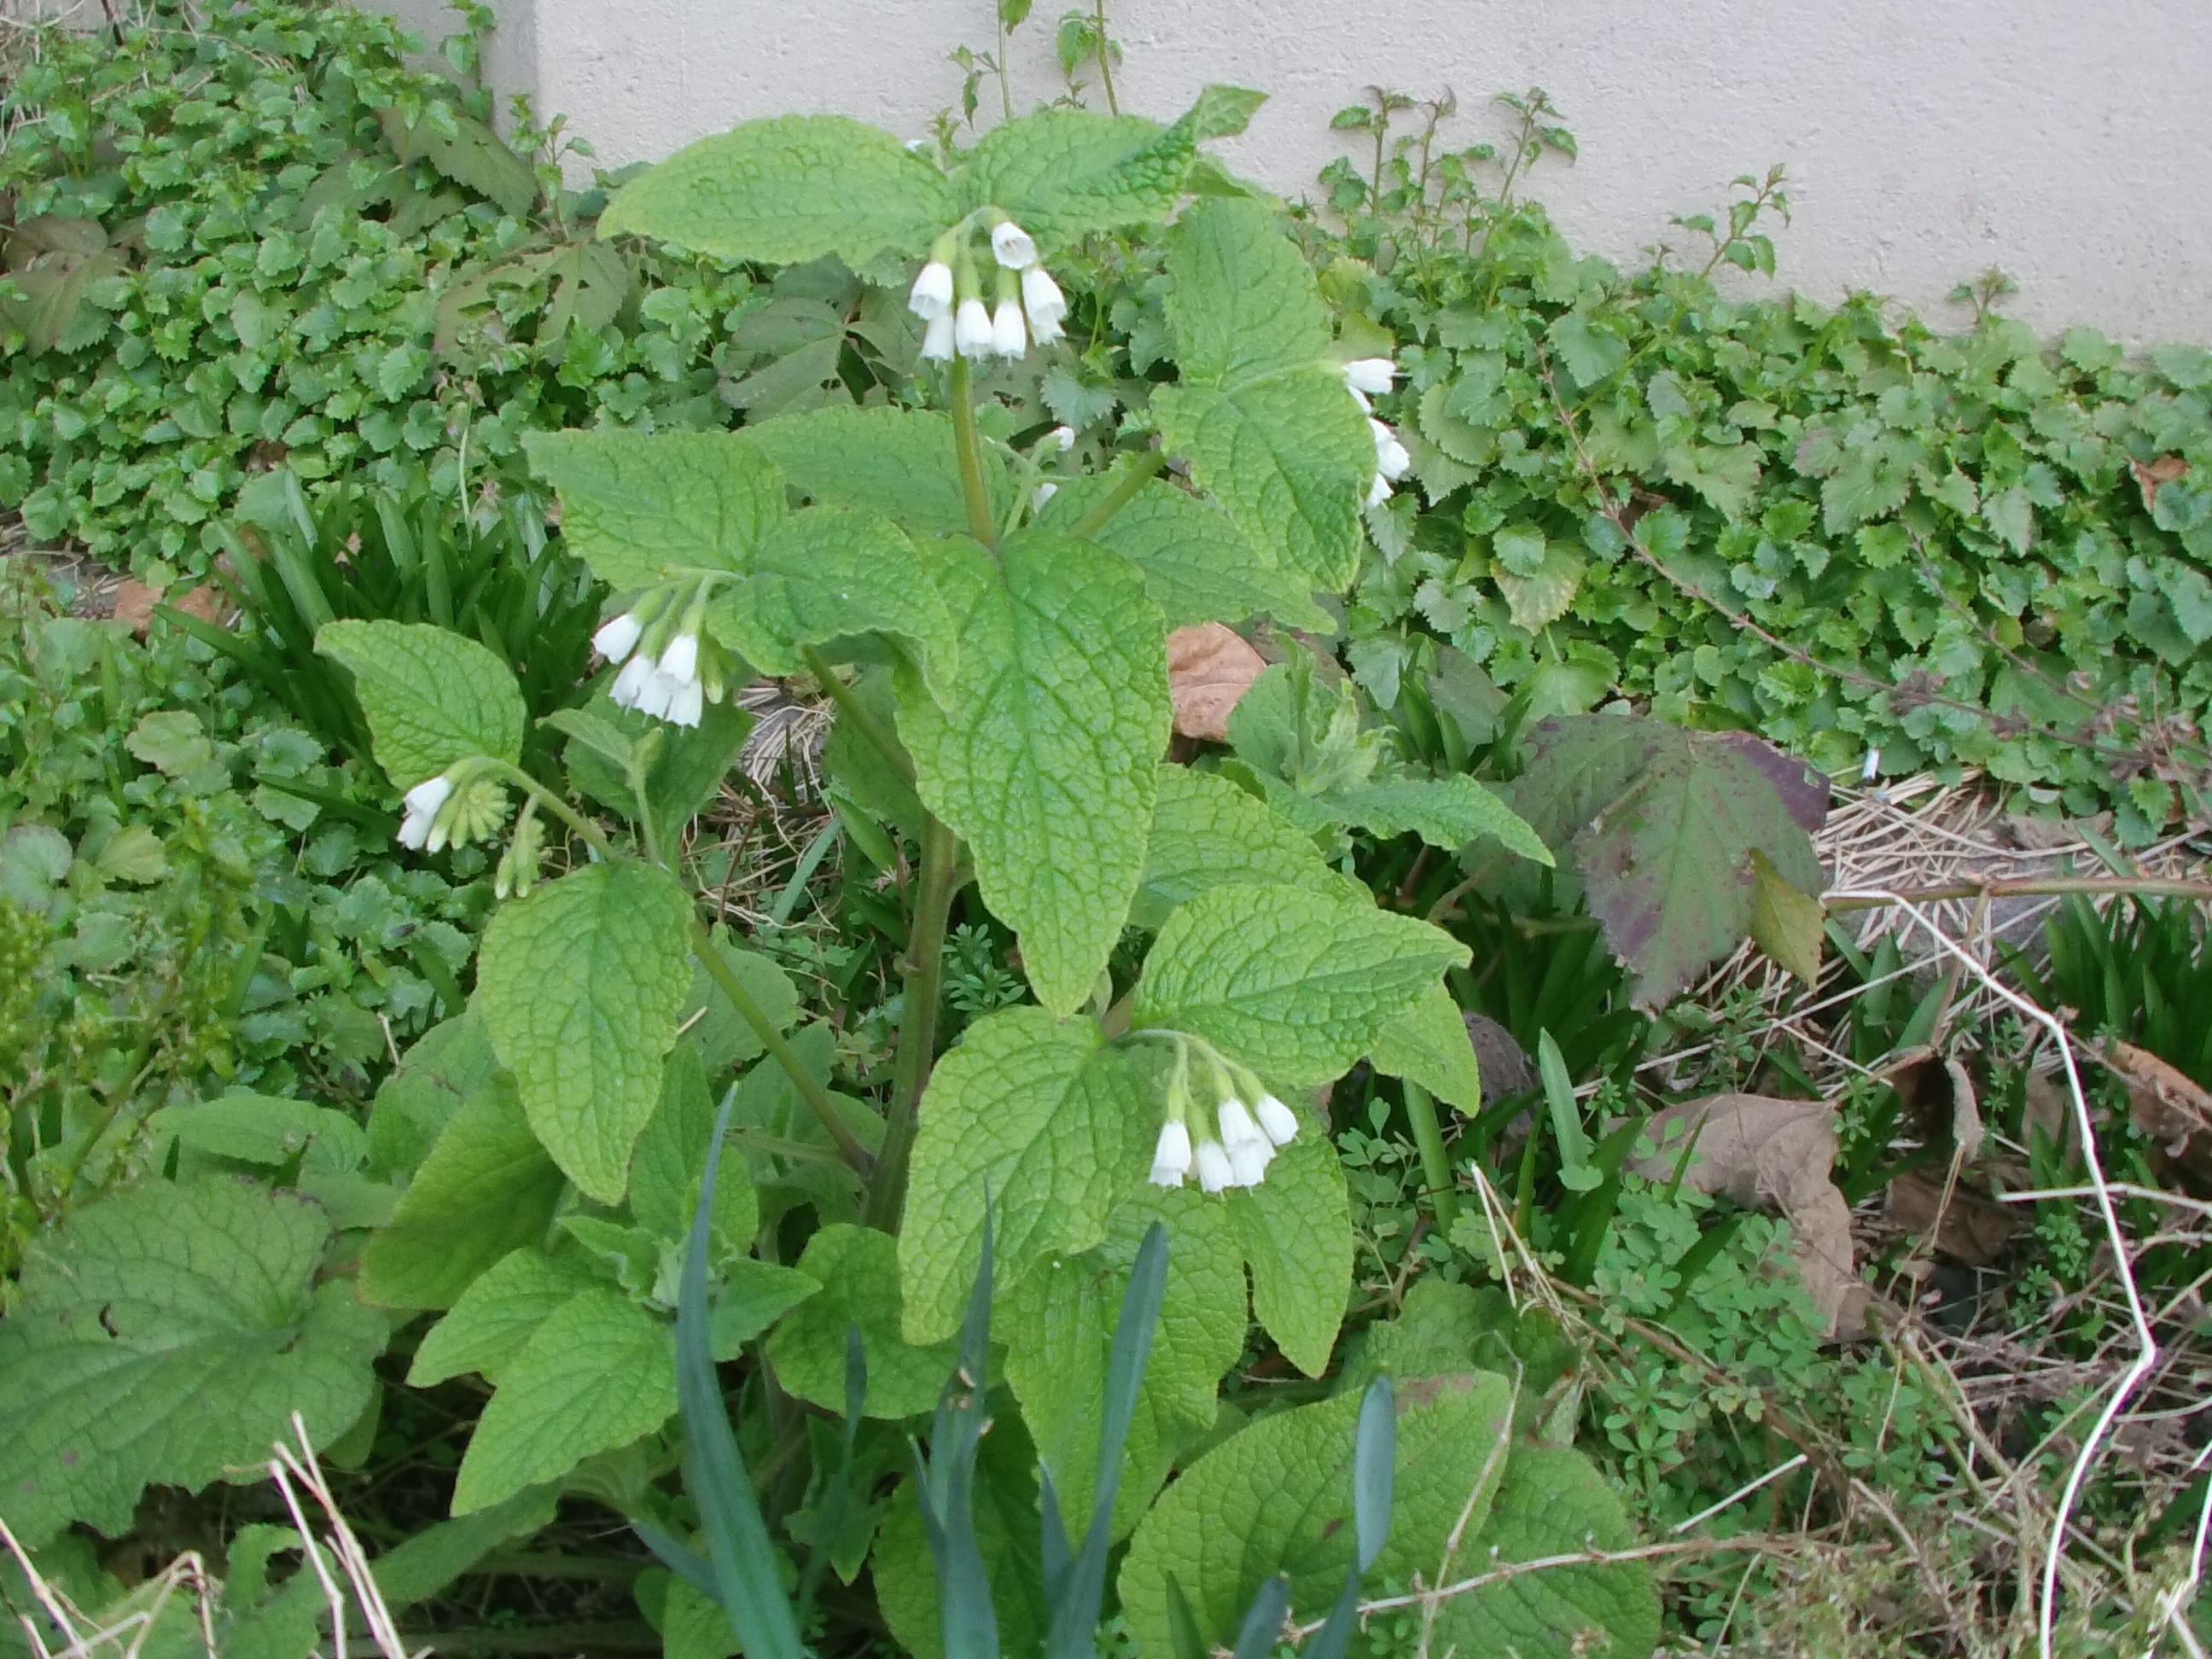 Comfrey species are rich in allantoin, an important medicinal plant constituent